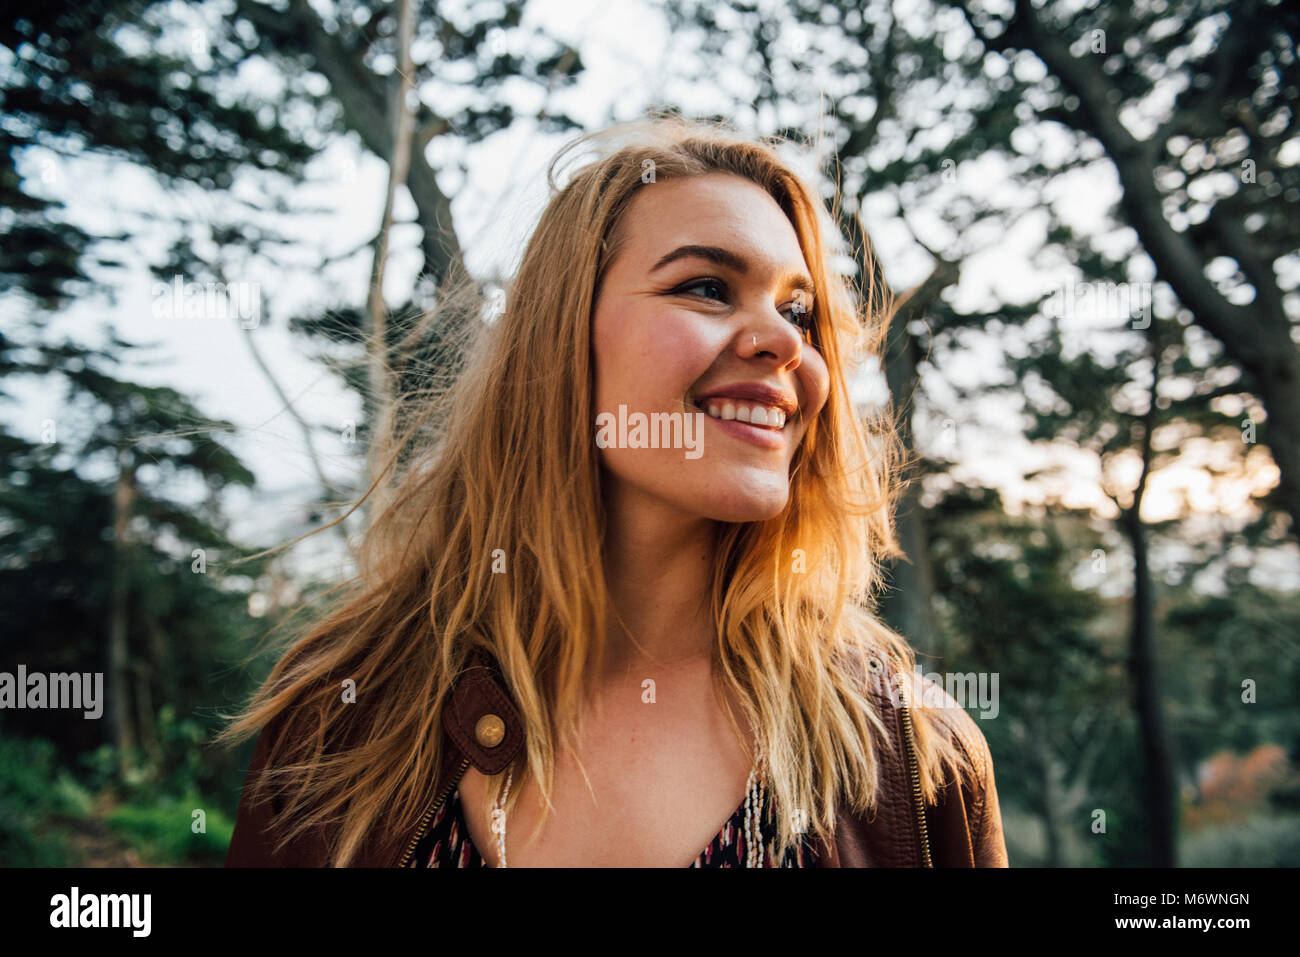 Young woman explore Golden Gate Park at sunset. - Stock Image